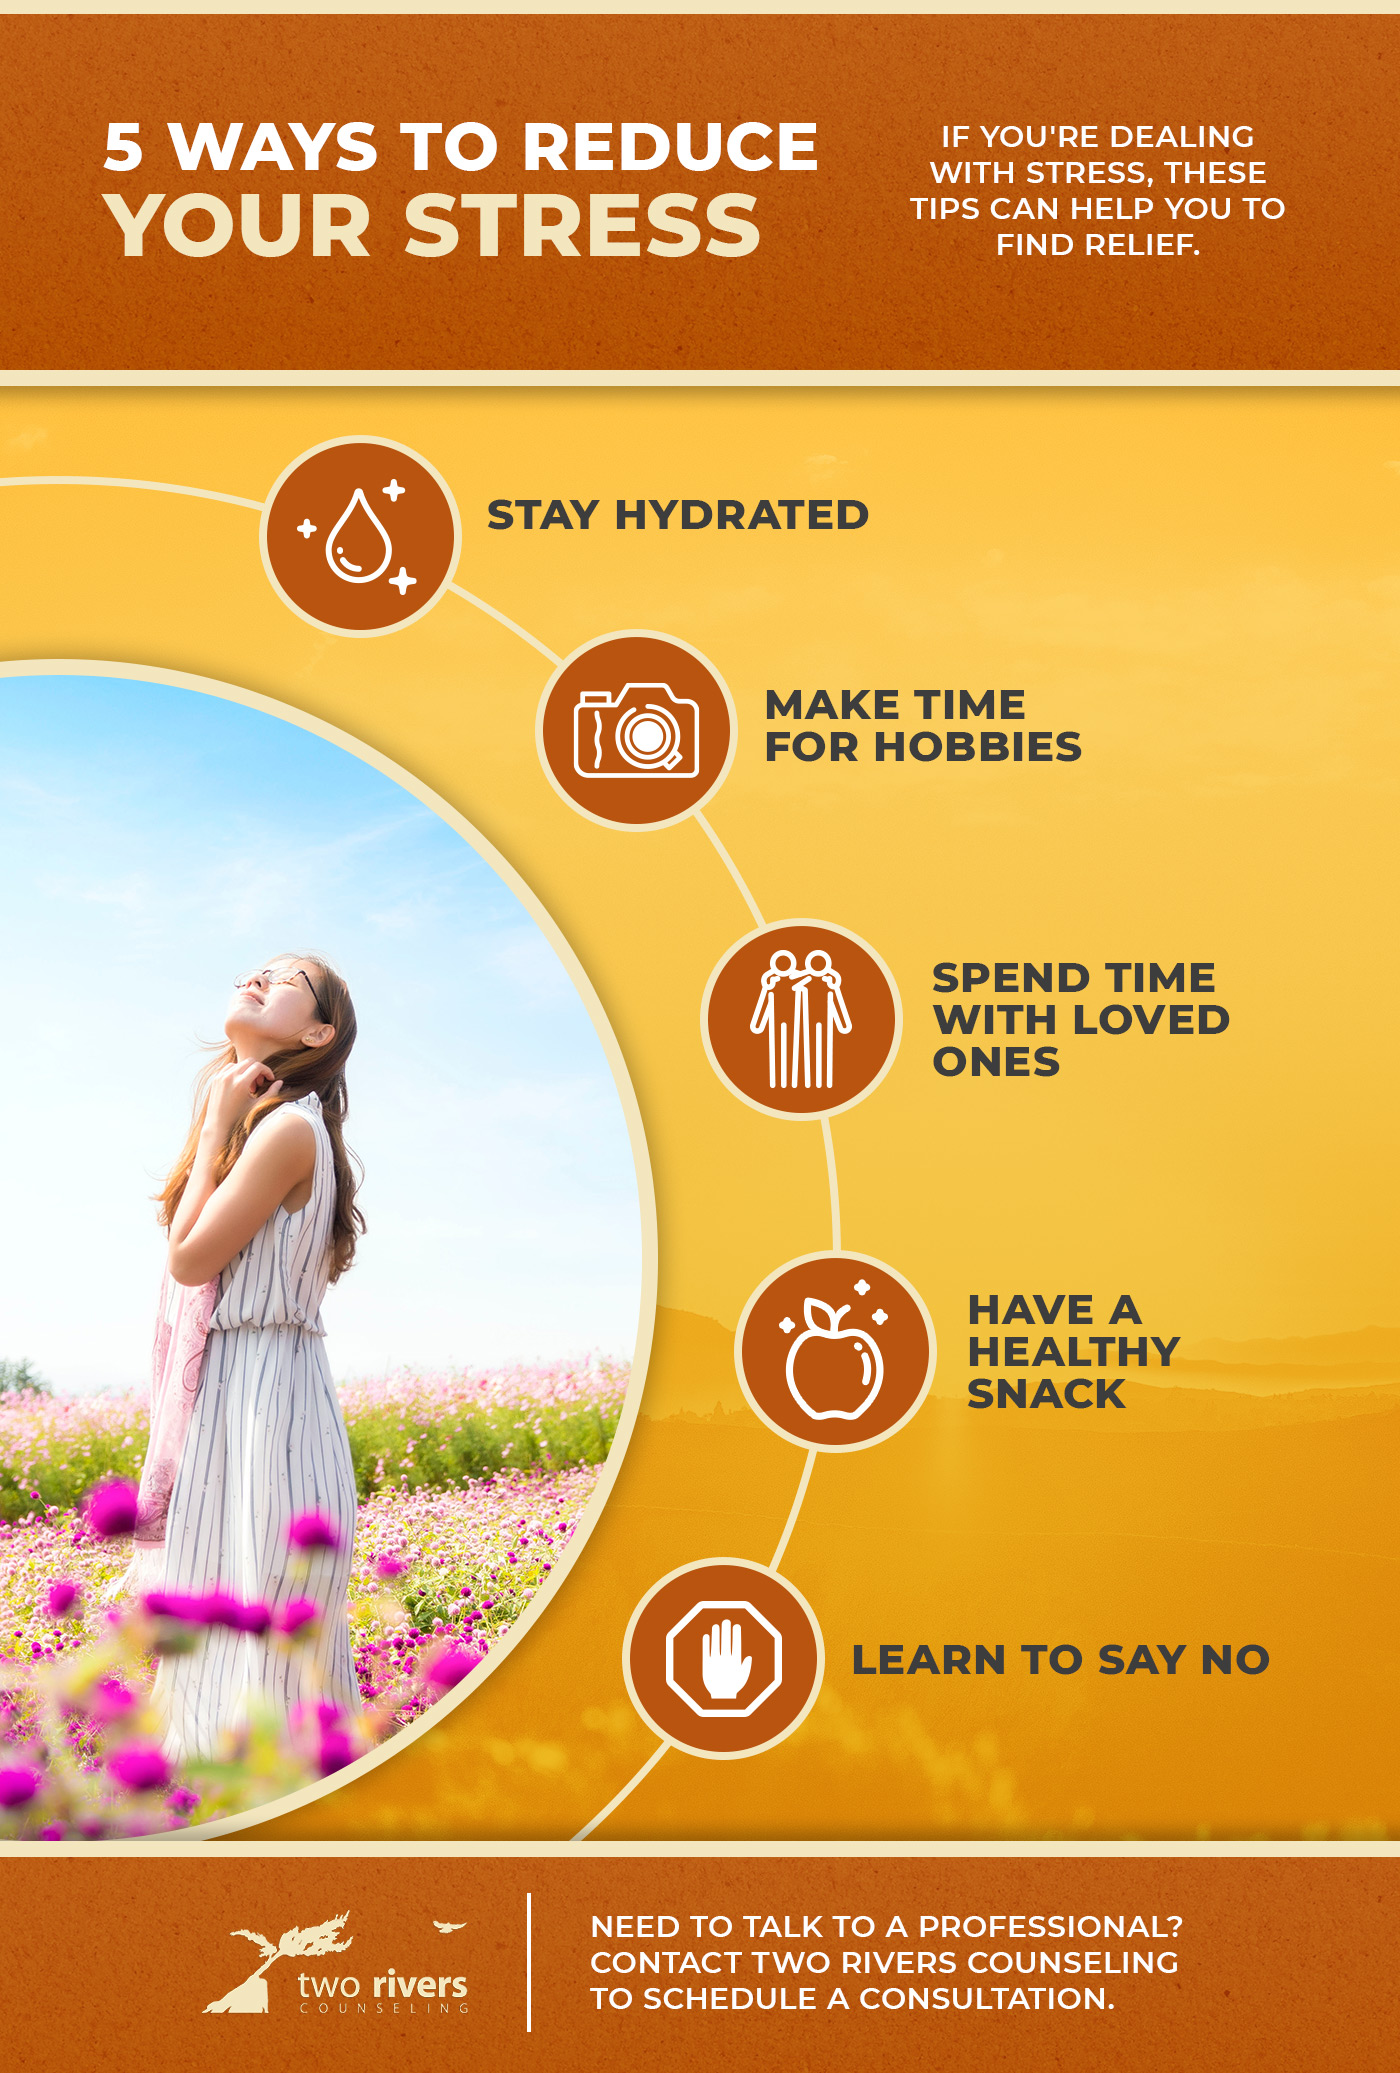 5 Ways to Reduce Your Stress